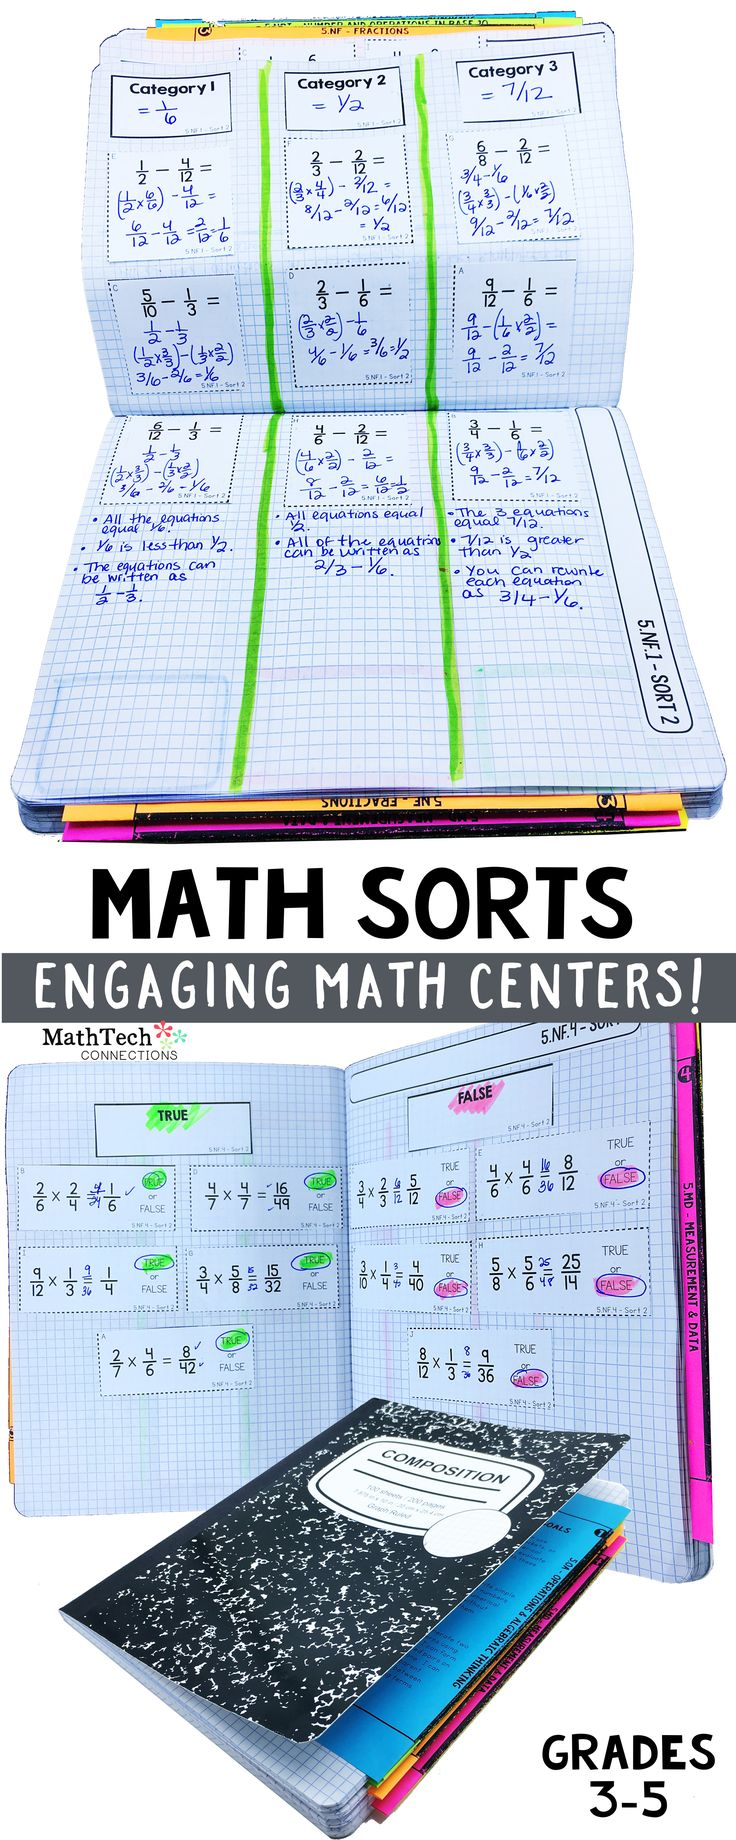 Engaging, standard specific math centers! Students will love these fun, new math centers! There are 3 for each common core standard, so you will have resources for whole group instruction, small group or center practice, and assessment! Binder pages for teacher organization are also included! Student dividers to keep math sorts organized are also included!